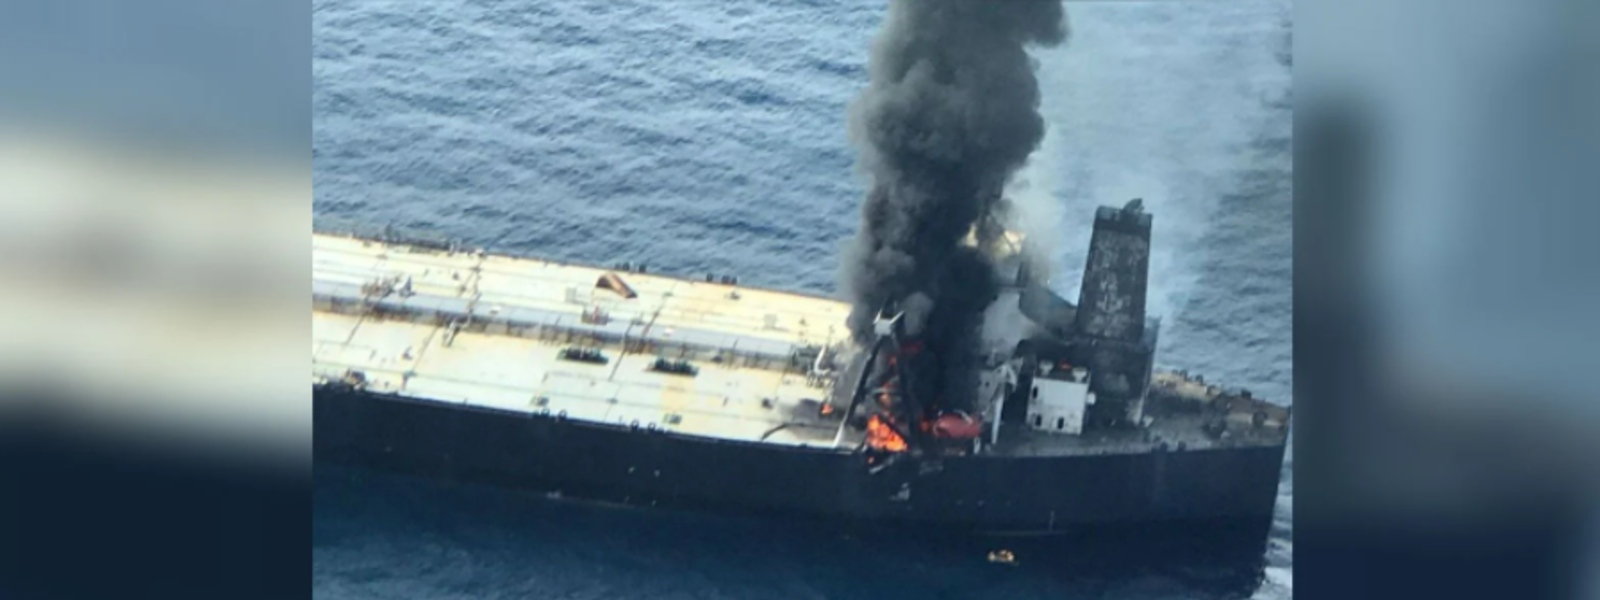 One crew member of MT New Diamond Crude Oil Tanker reported dead: Sri Lanka Navy